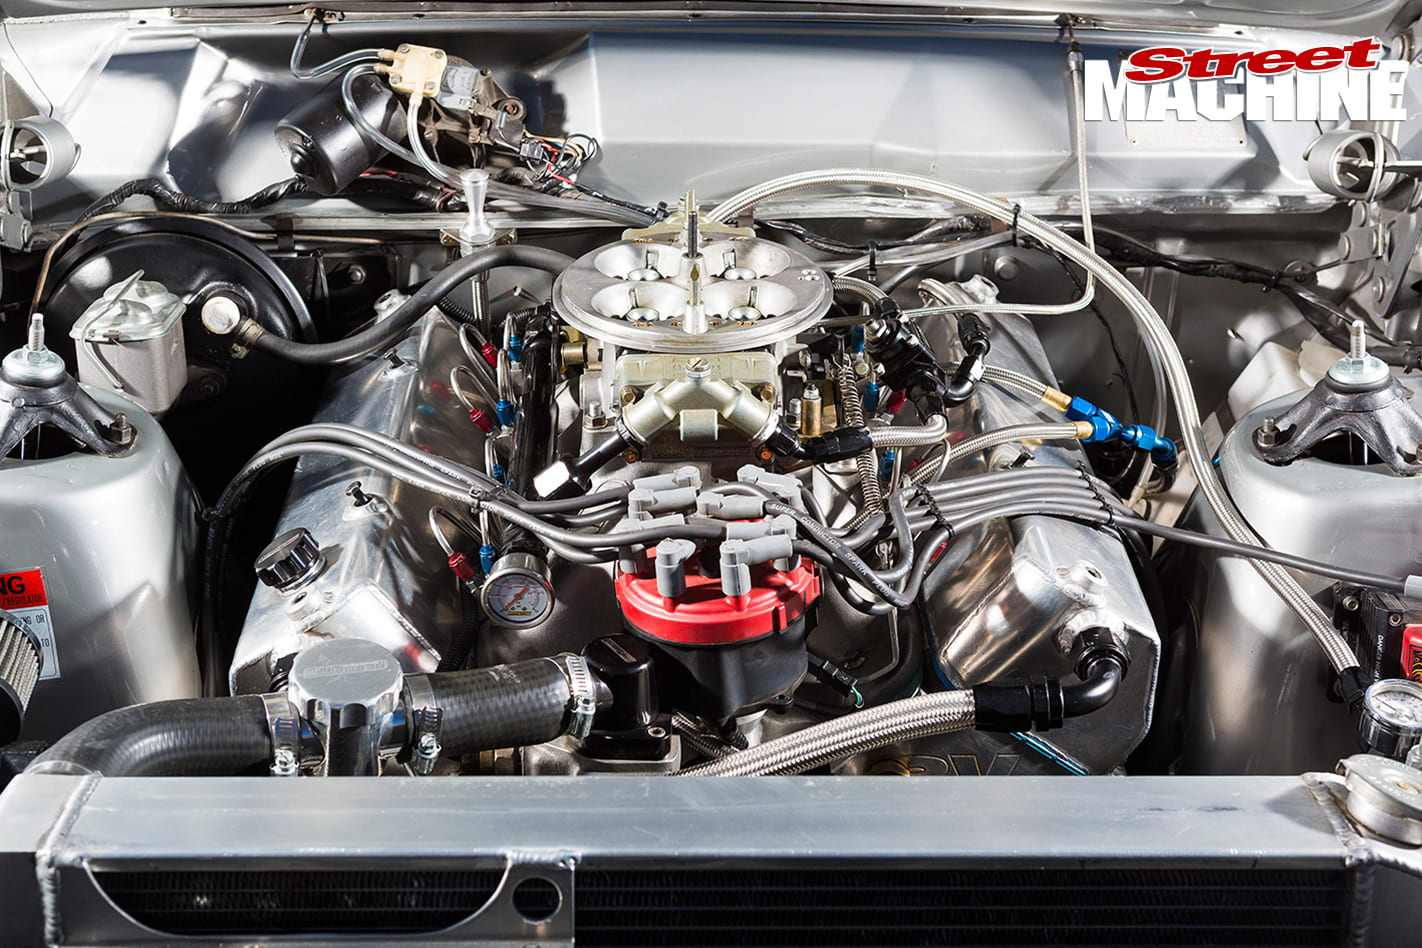 1970-Ford -XW-Falcon -engine -detail